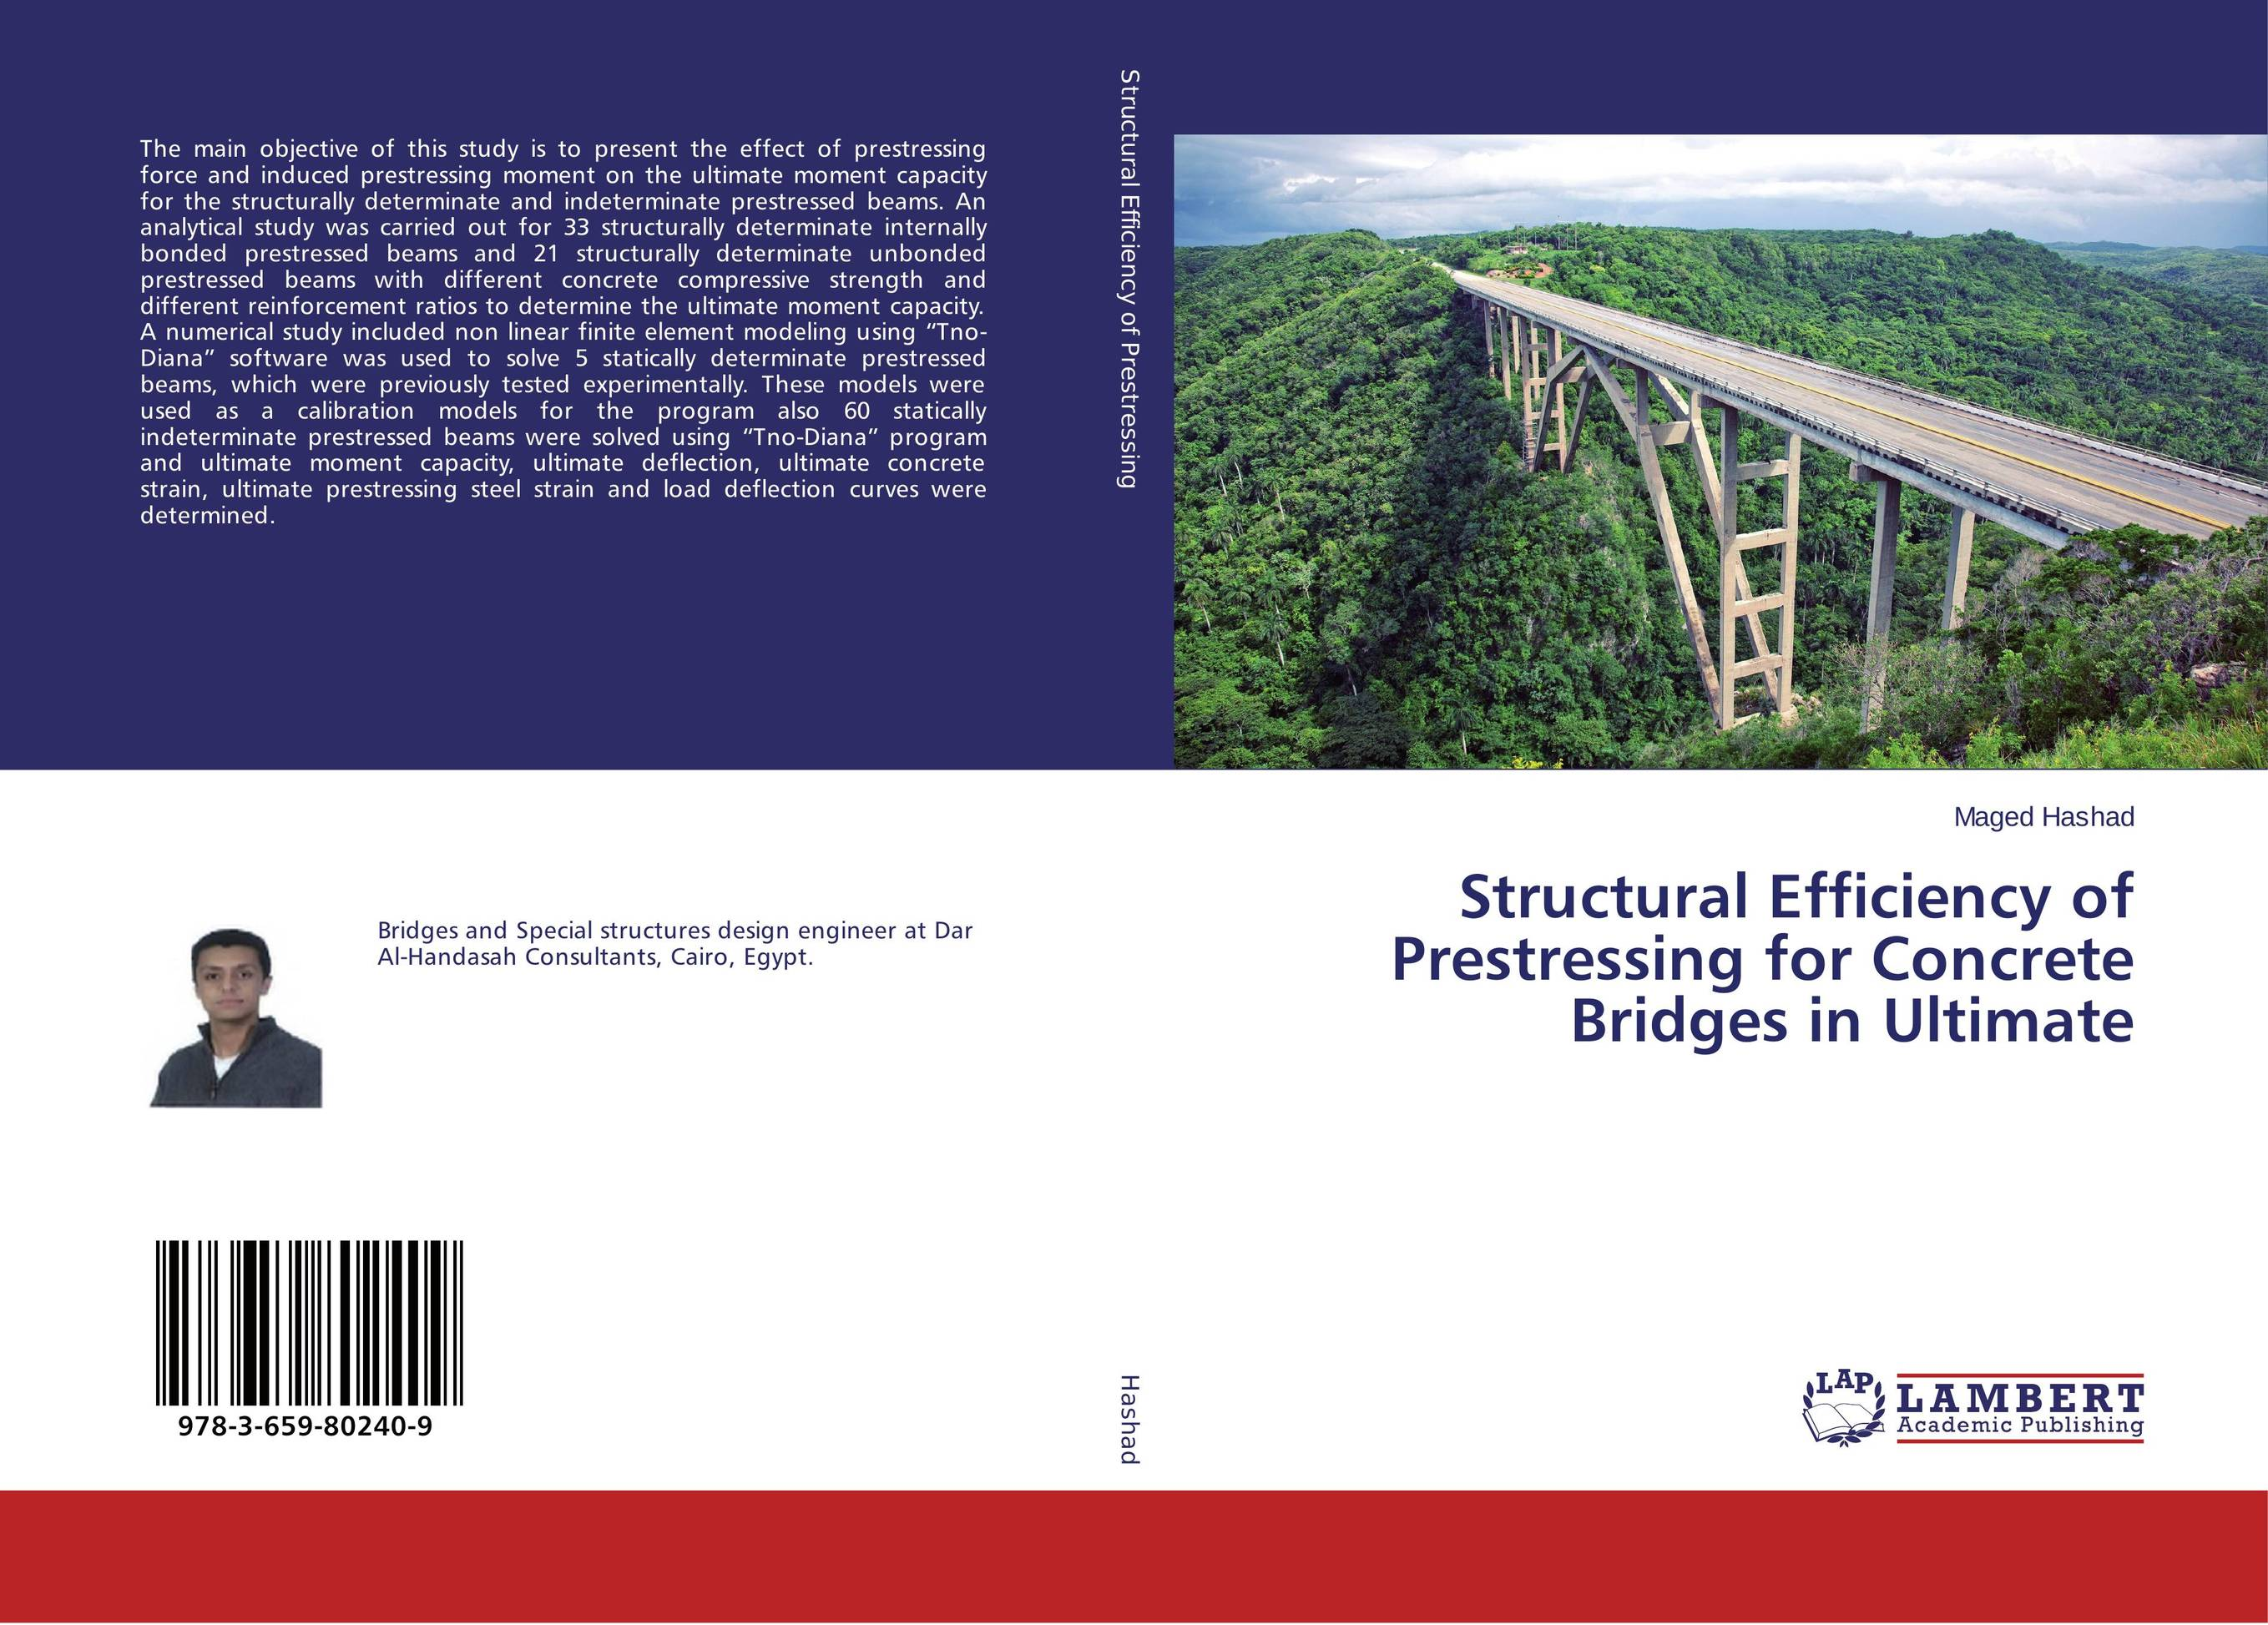 Structural Efficiency of Prestressing for Concrete Bridges in Ultimate